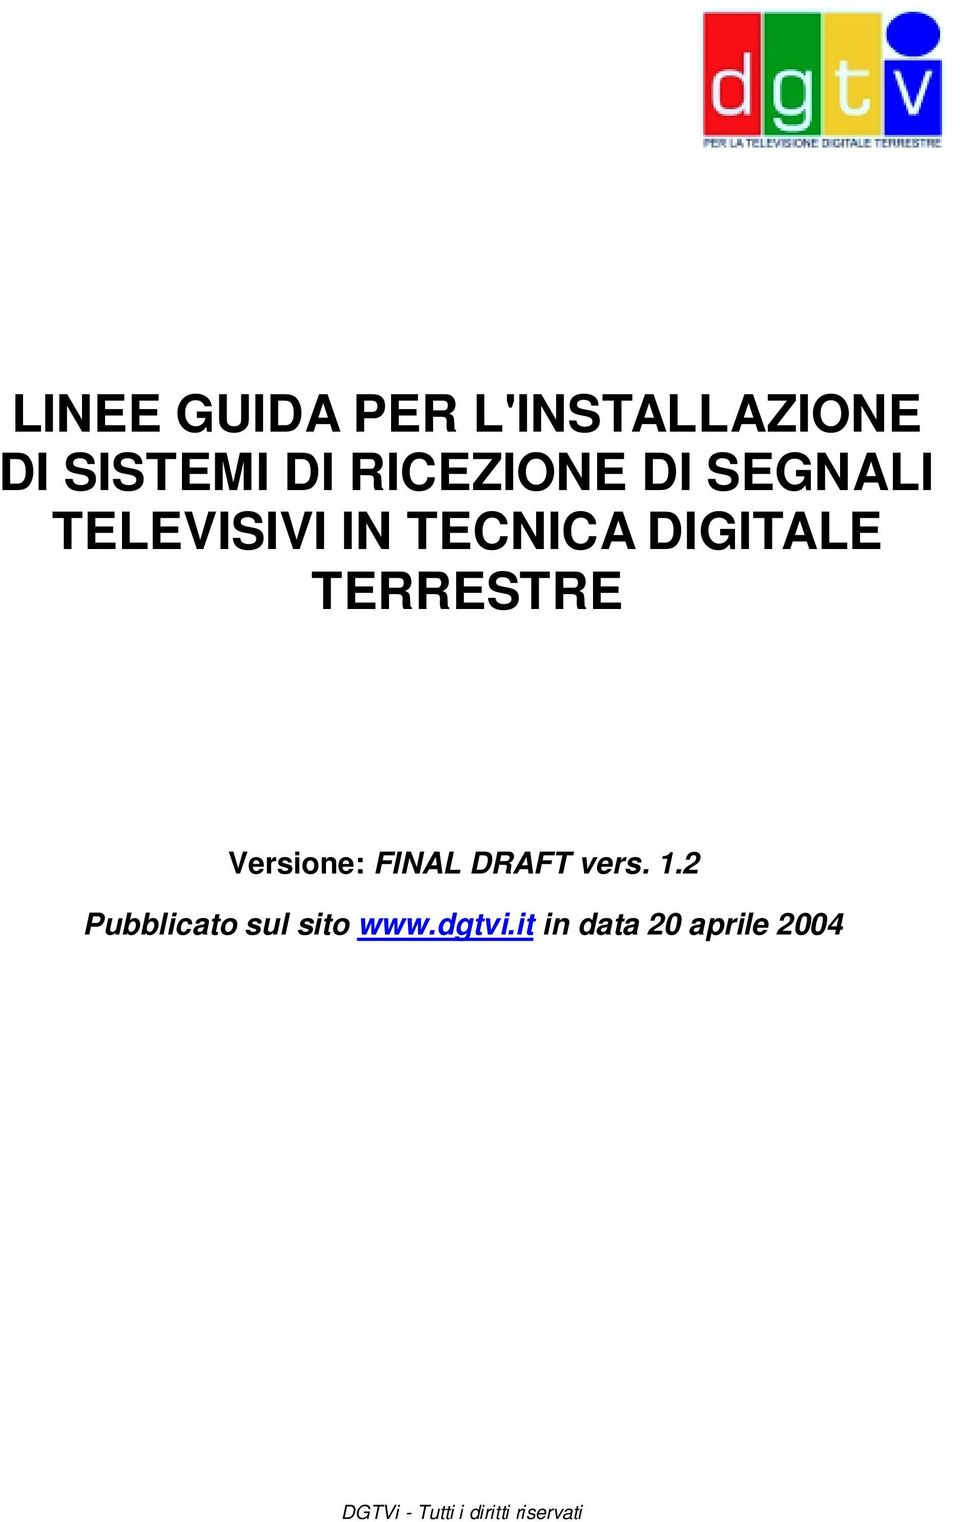 DIGITALE TERRESTRE Versione: FINAL DRAFT vers. 1.